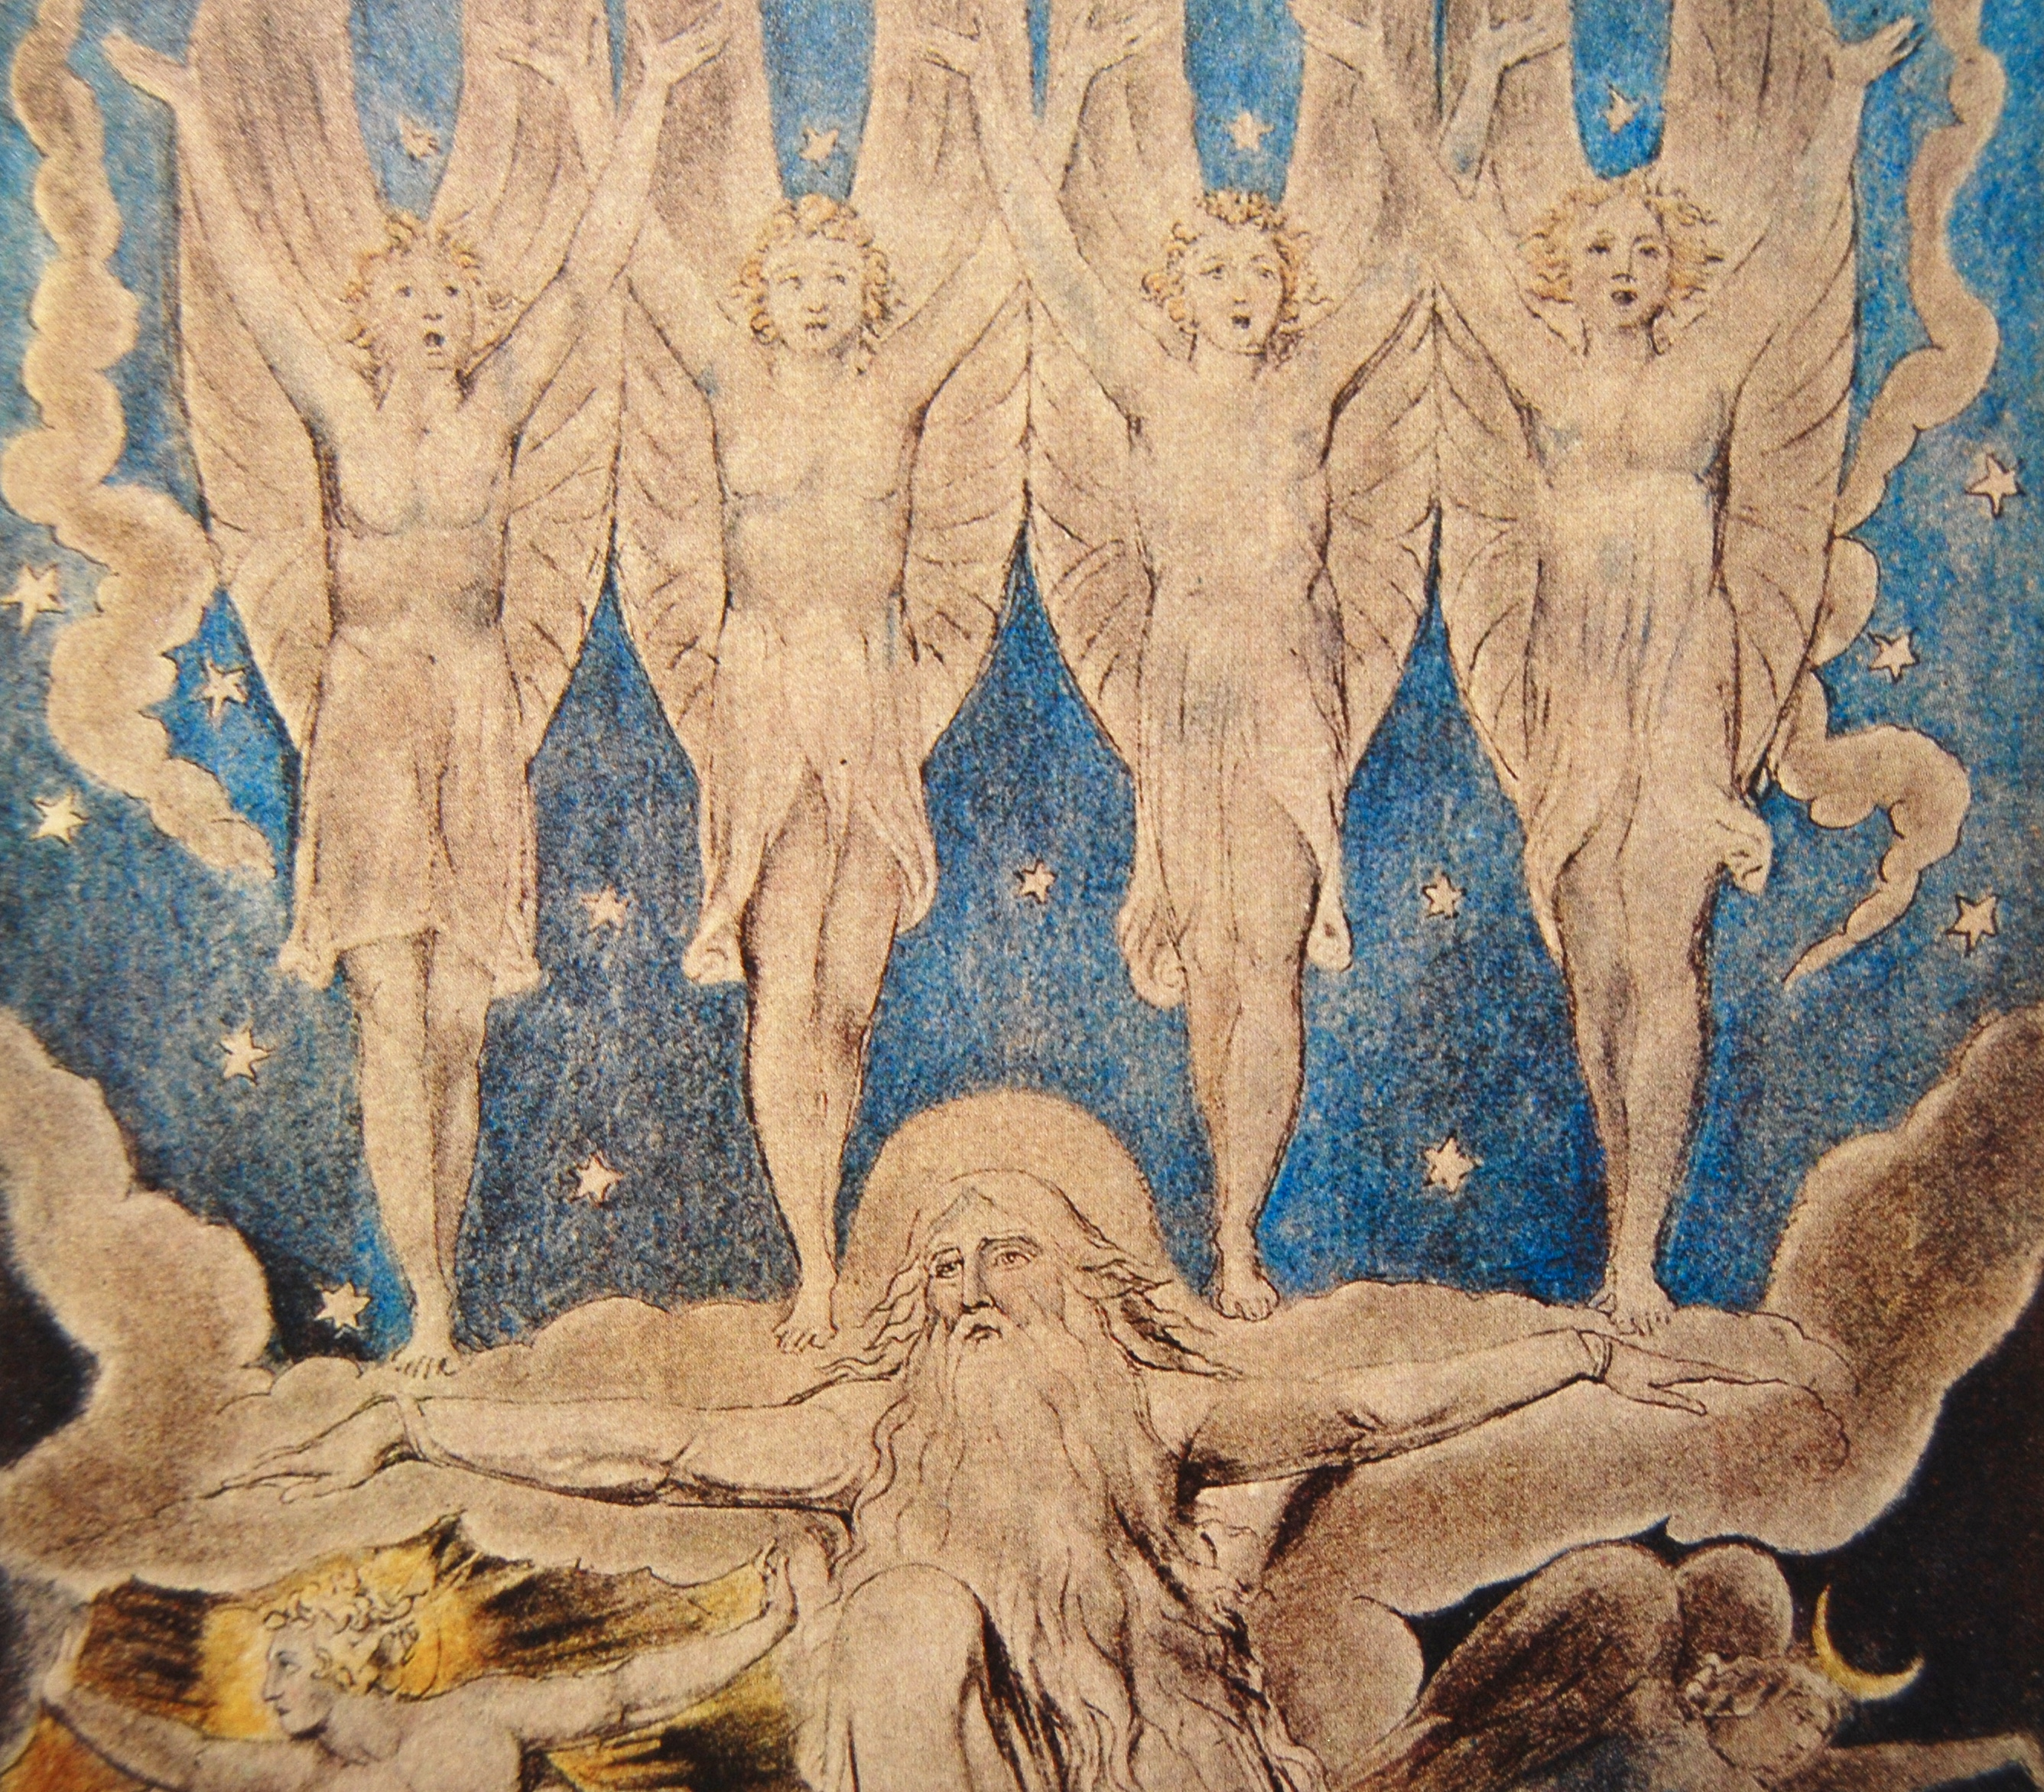 detail from The Morning Stars Sang Together, watercolour by William Blake c.1821, from Kathleen Raine's Blake biography (Thames and Hudson)